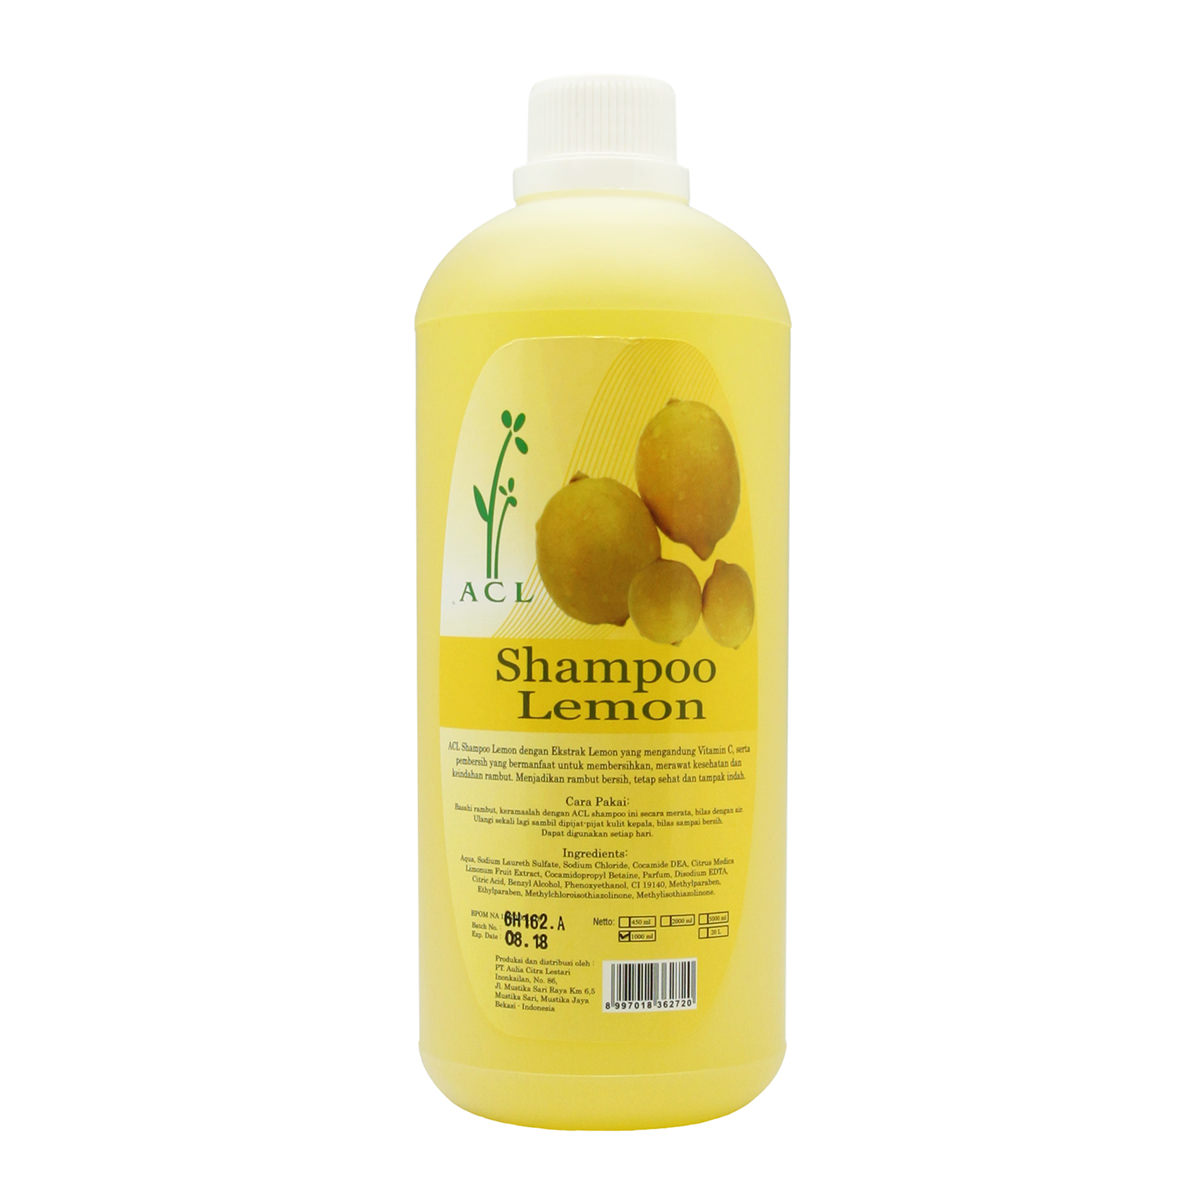 ACL-Shampoo-Lemon-(1000-ml)-high-sfw(2)